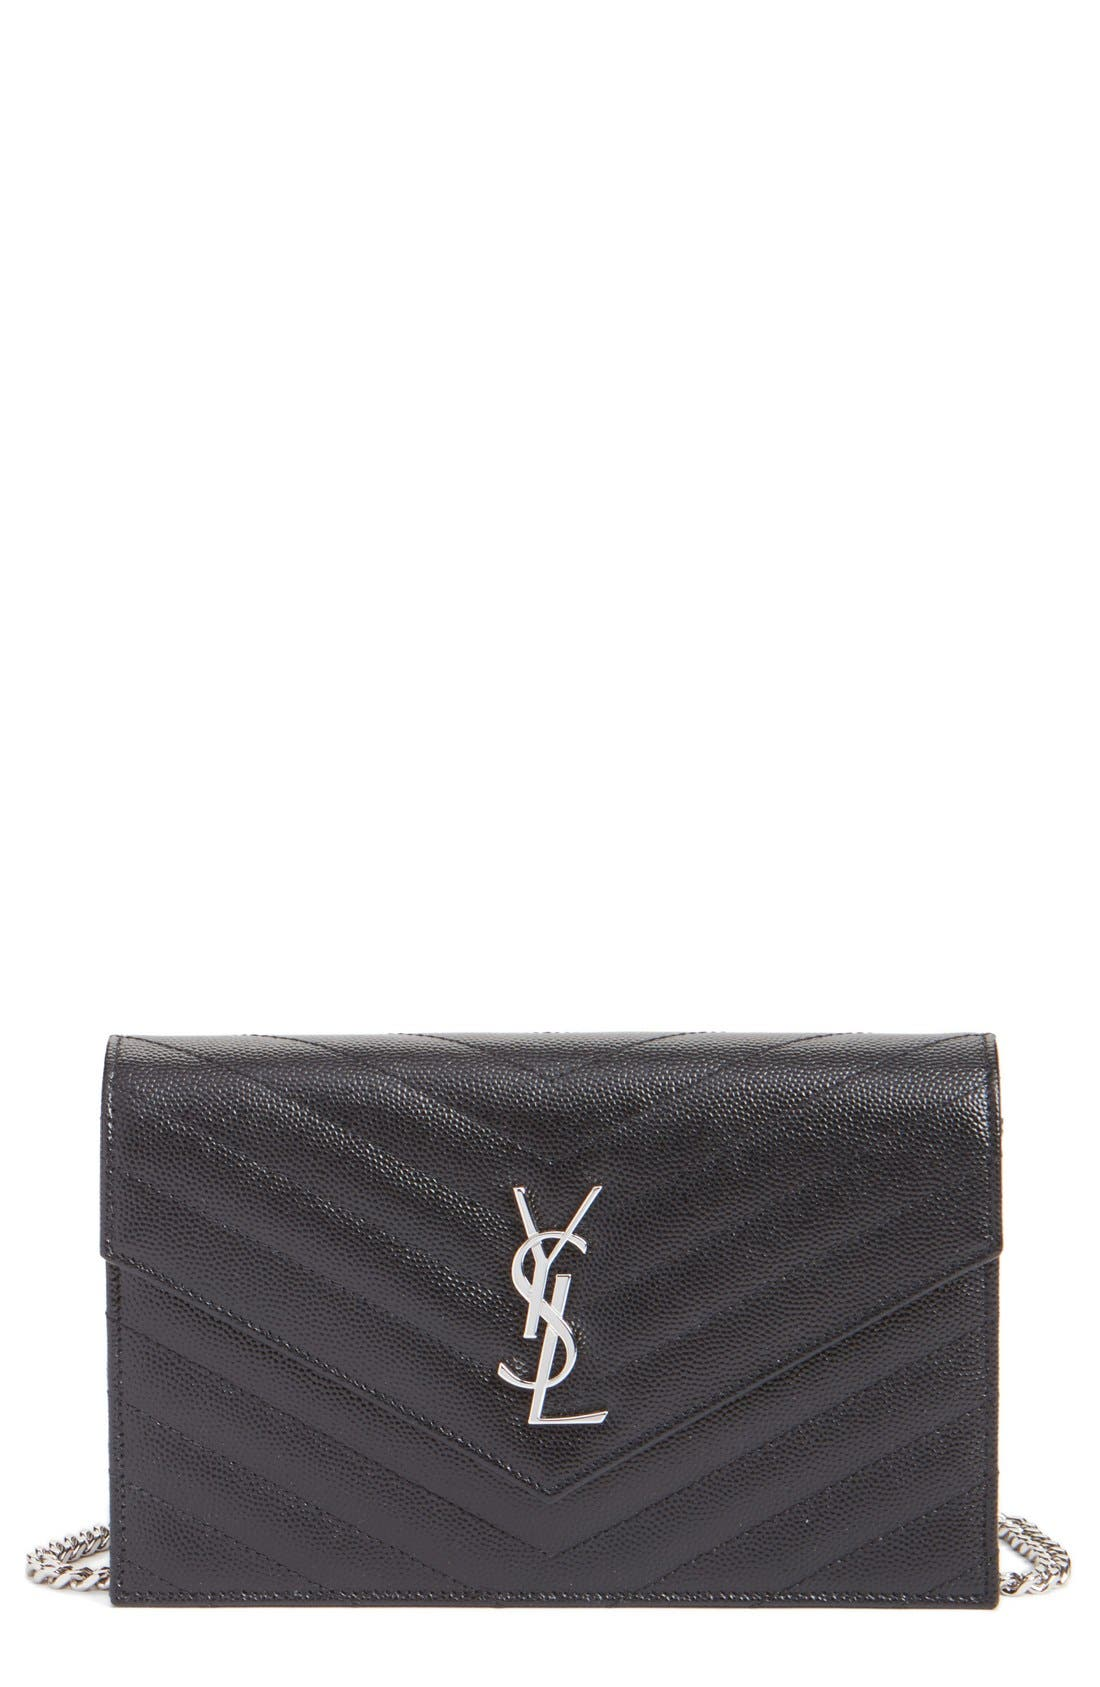 Alternate Image 1 Selected - Saint Laurent Quilted Calfskin Leather Wallet on a Chain